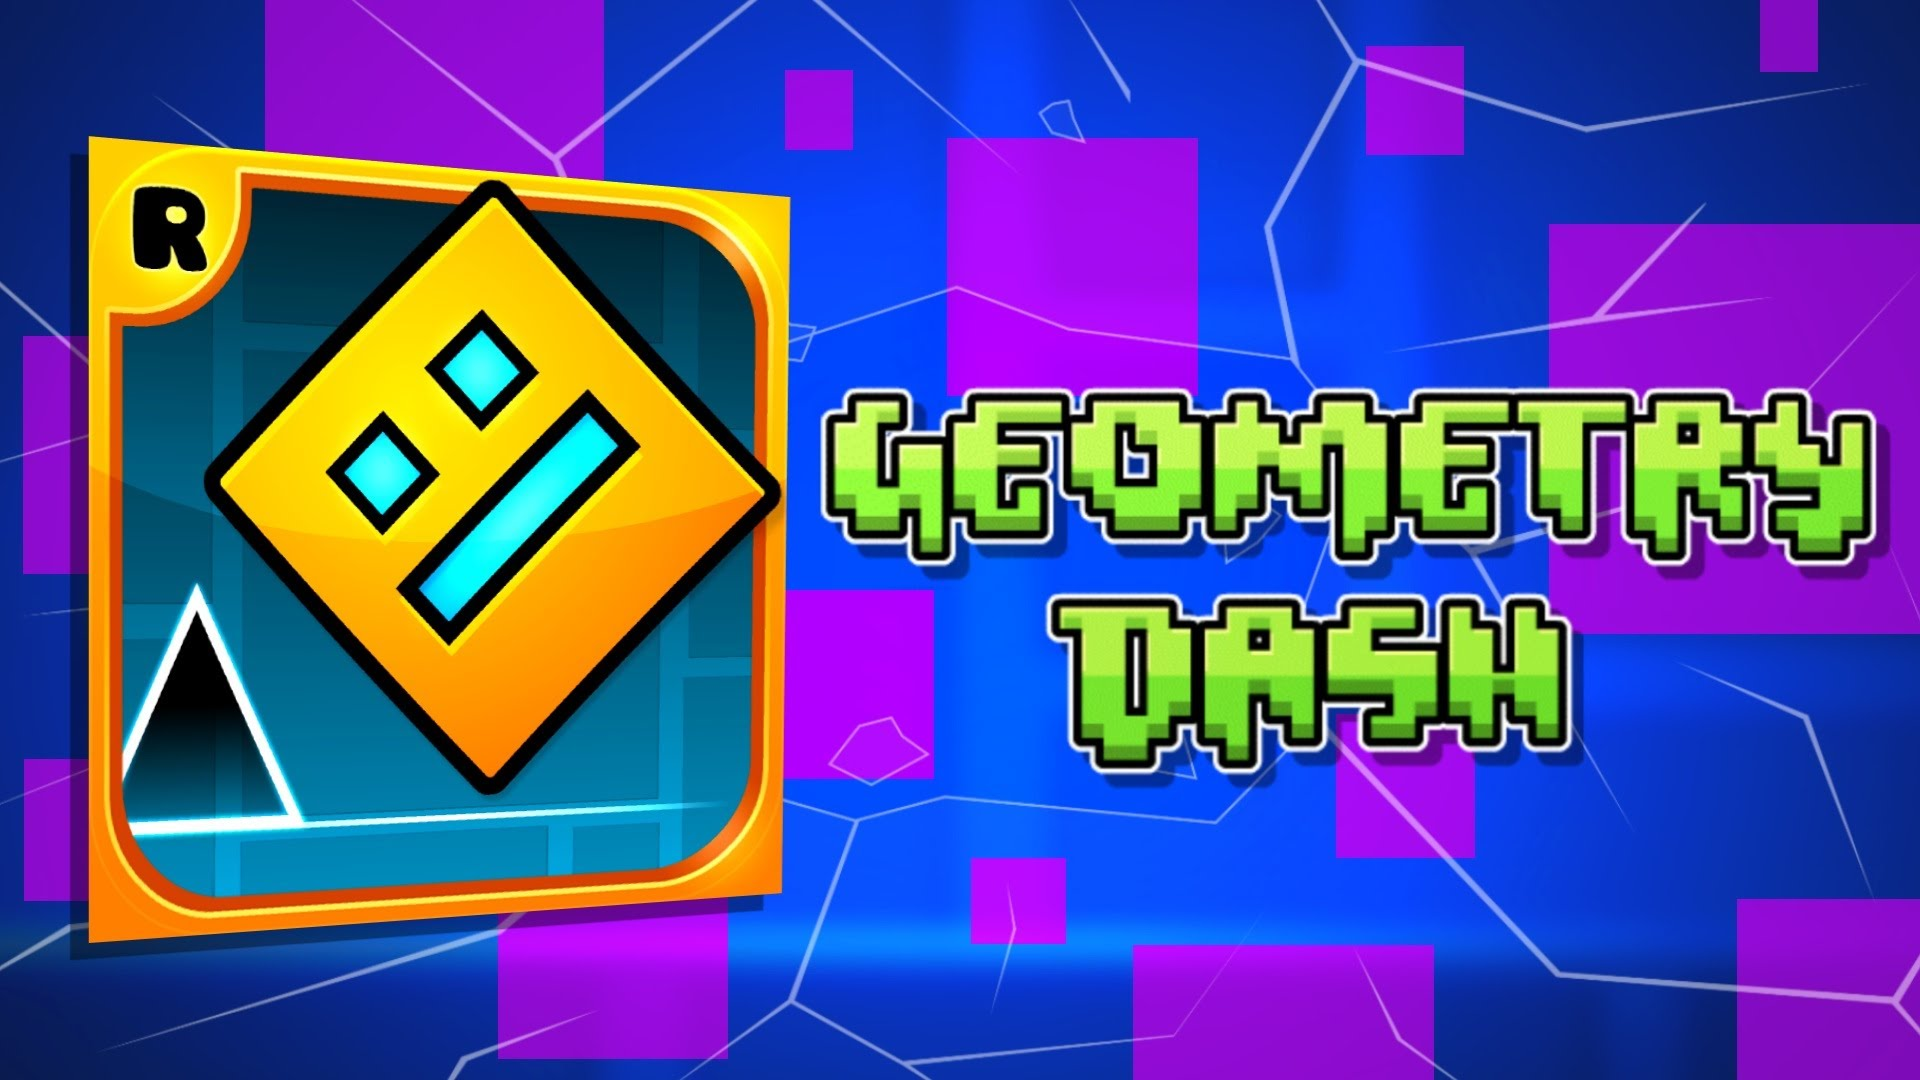 geometry dash 2.1 apk download full version pc